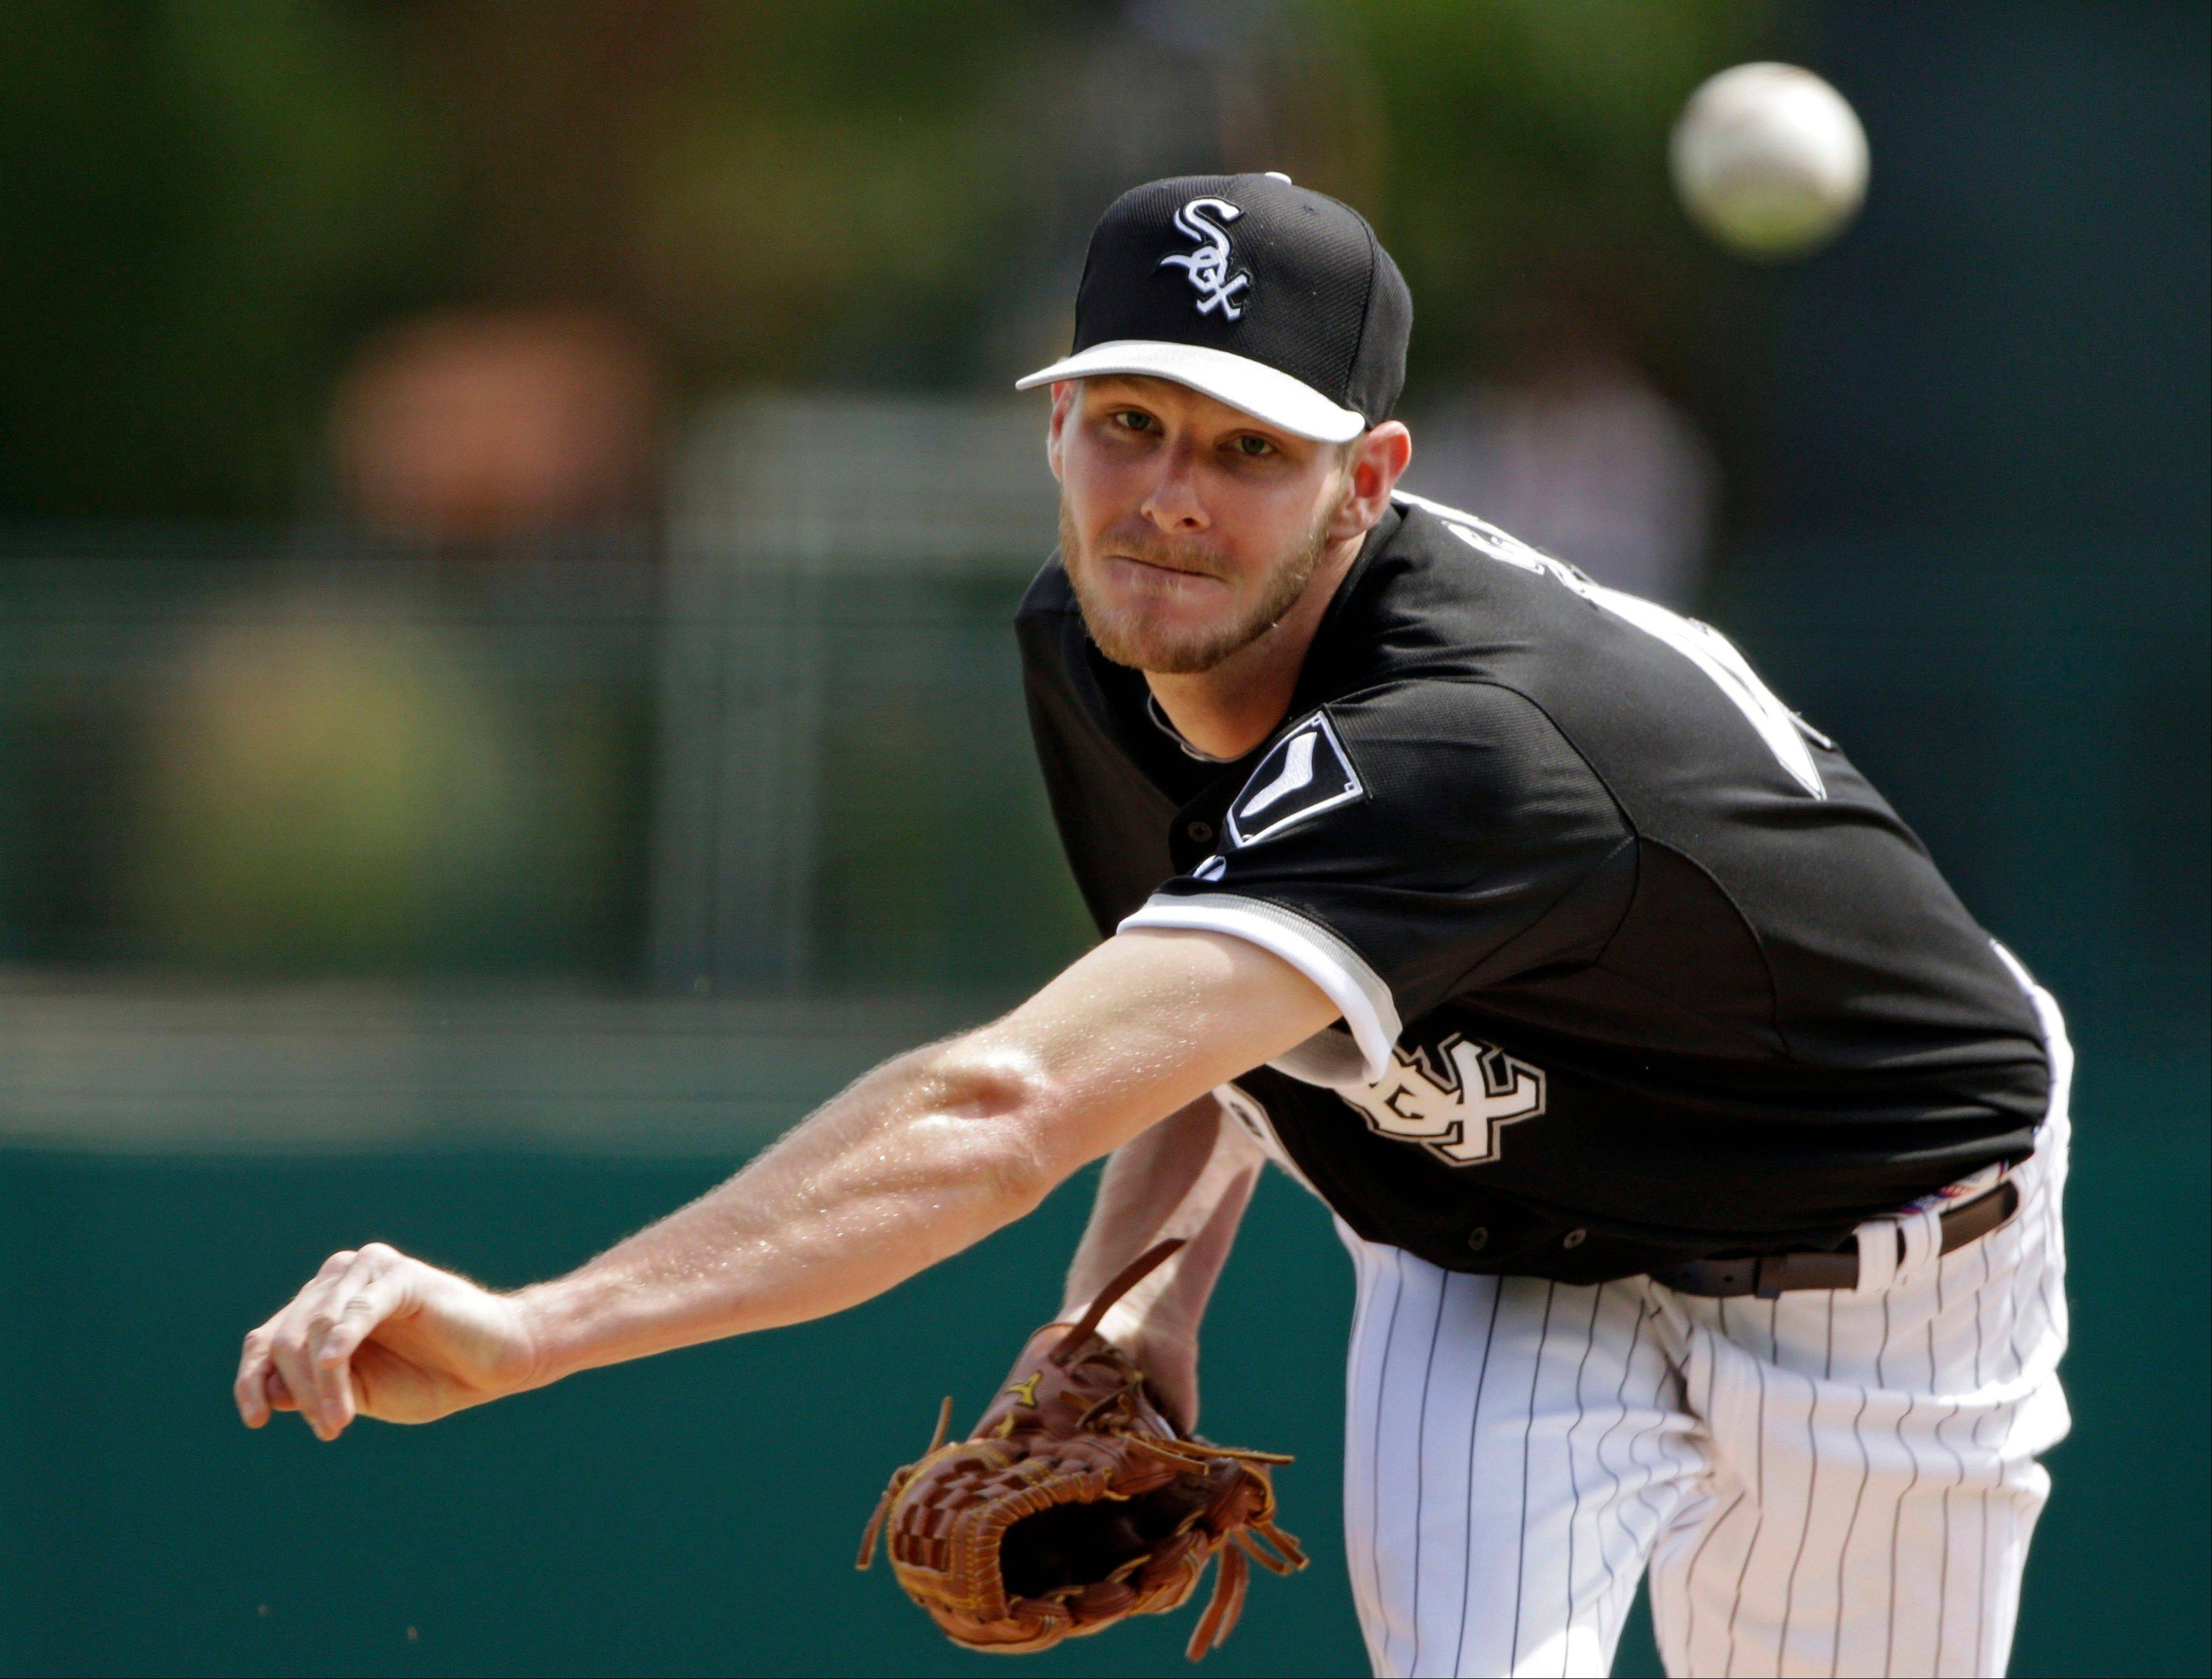 Chicago White Sox starting pitcher Chris Sale dominated just about every team he started against last season while going 17-8 with a 3.05 ERA in his first year as a starter.